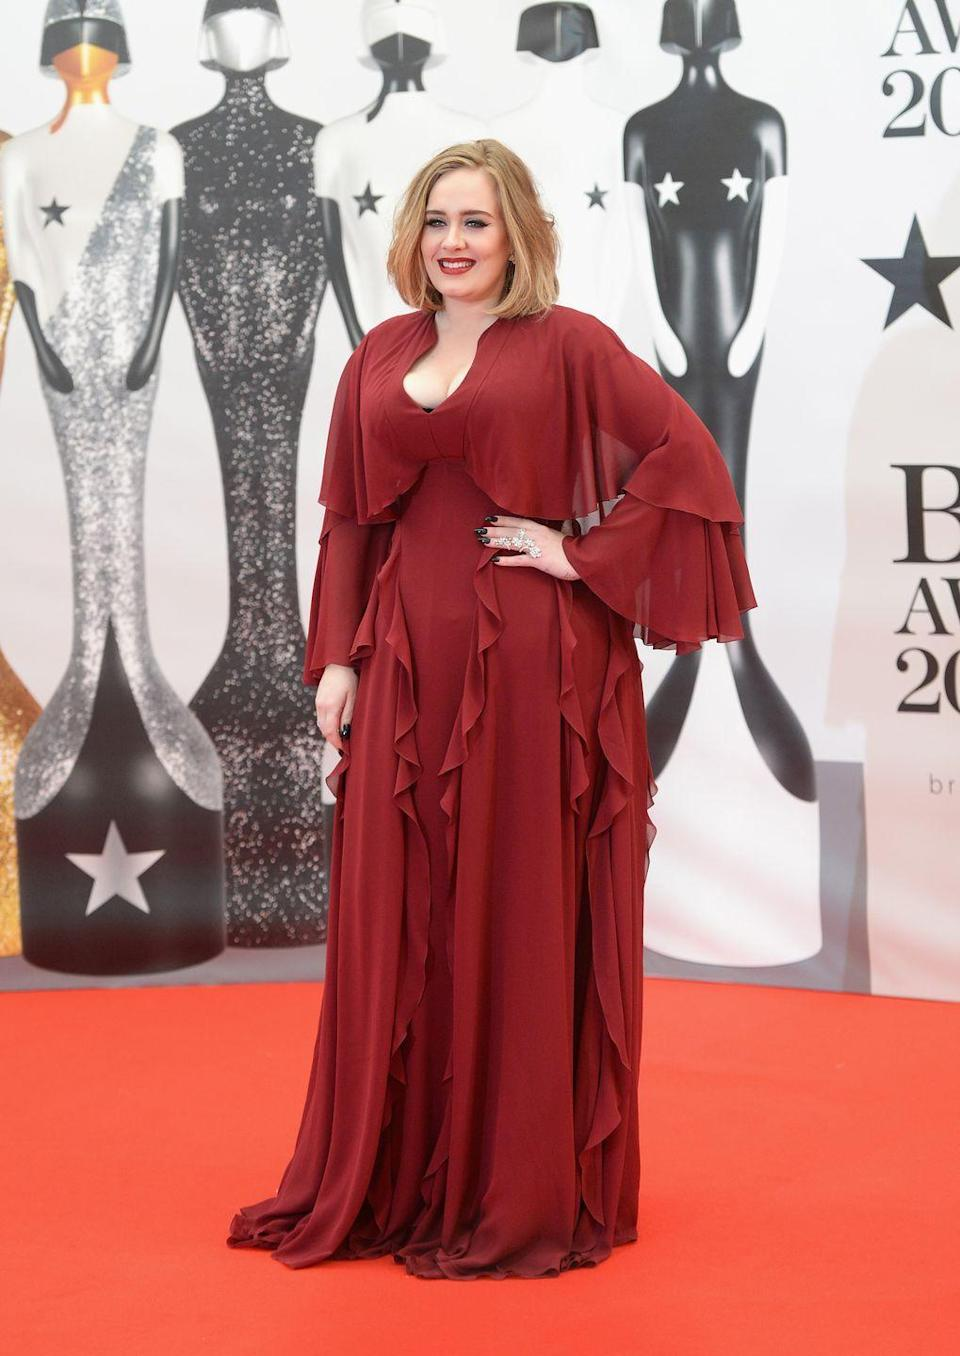 <p>Adele embraced colour at the 2016 Brit Awards, walking the red carpet in this flowing Giambattista Valli dress with gently cascading ruffles. </p>